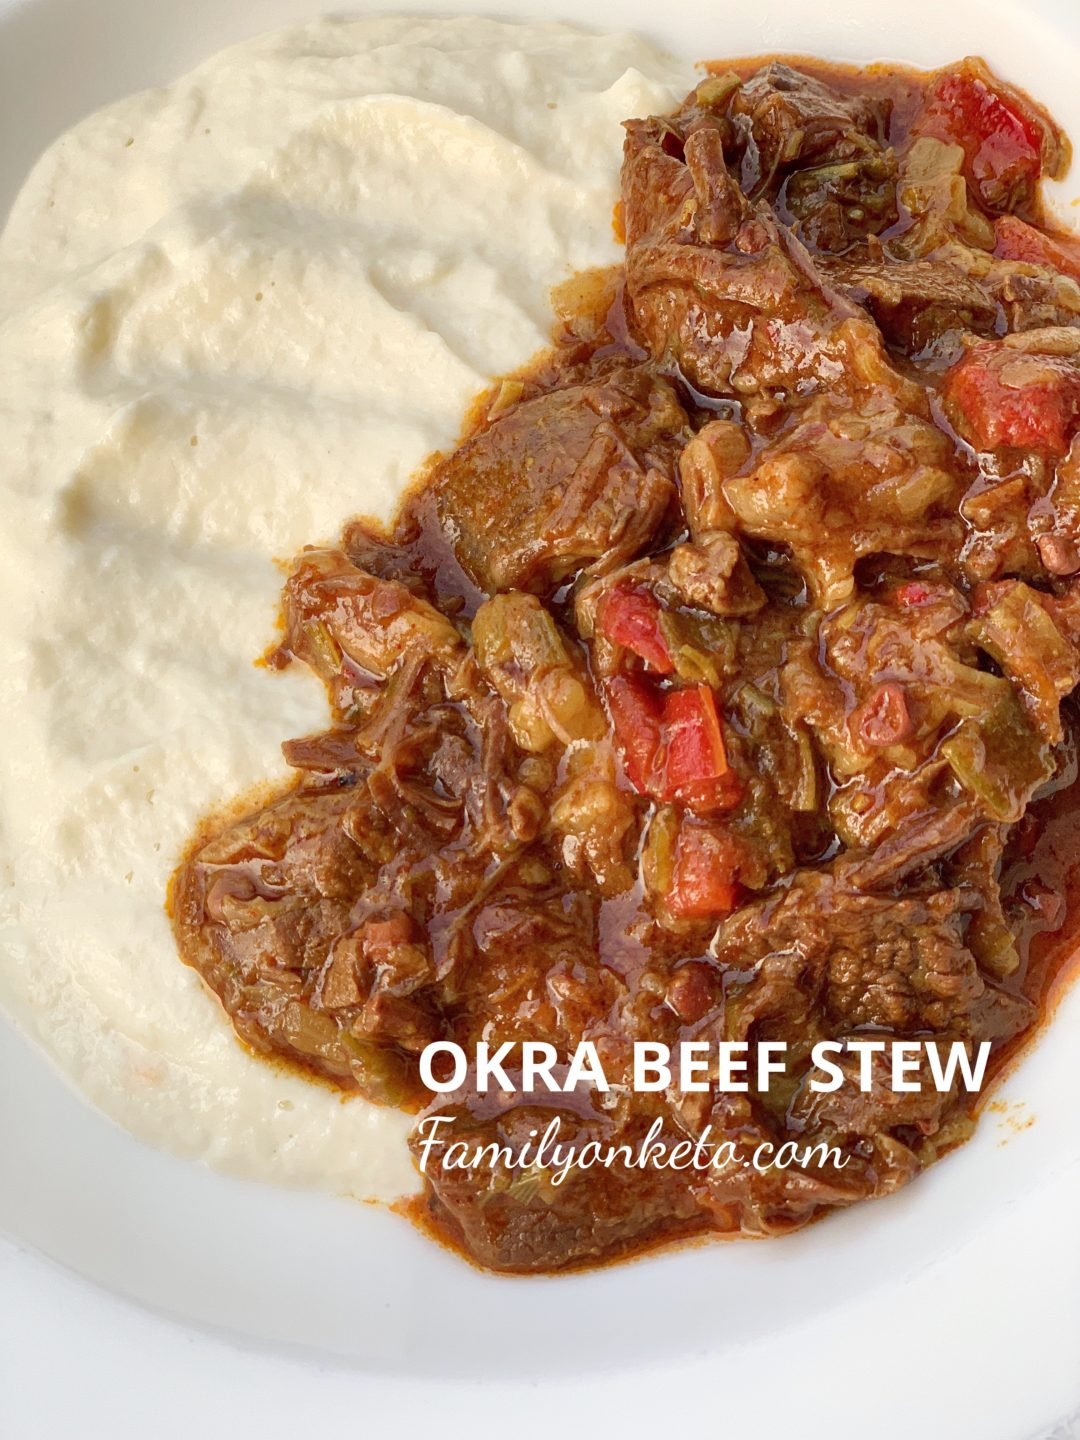 Picture of a plate full of okra beef stew with cauliflower mash